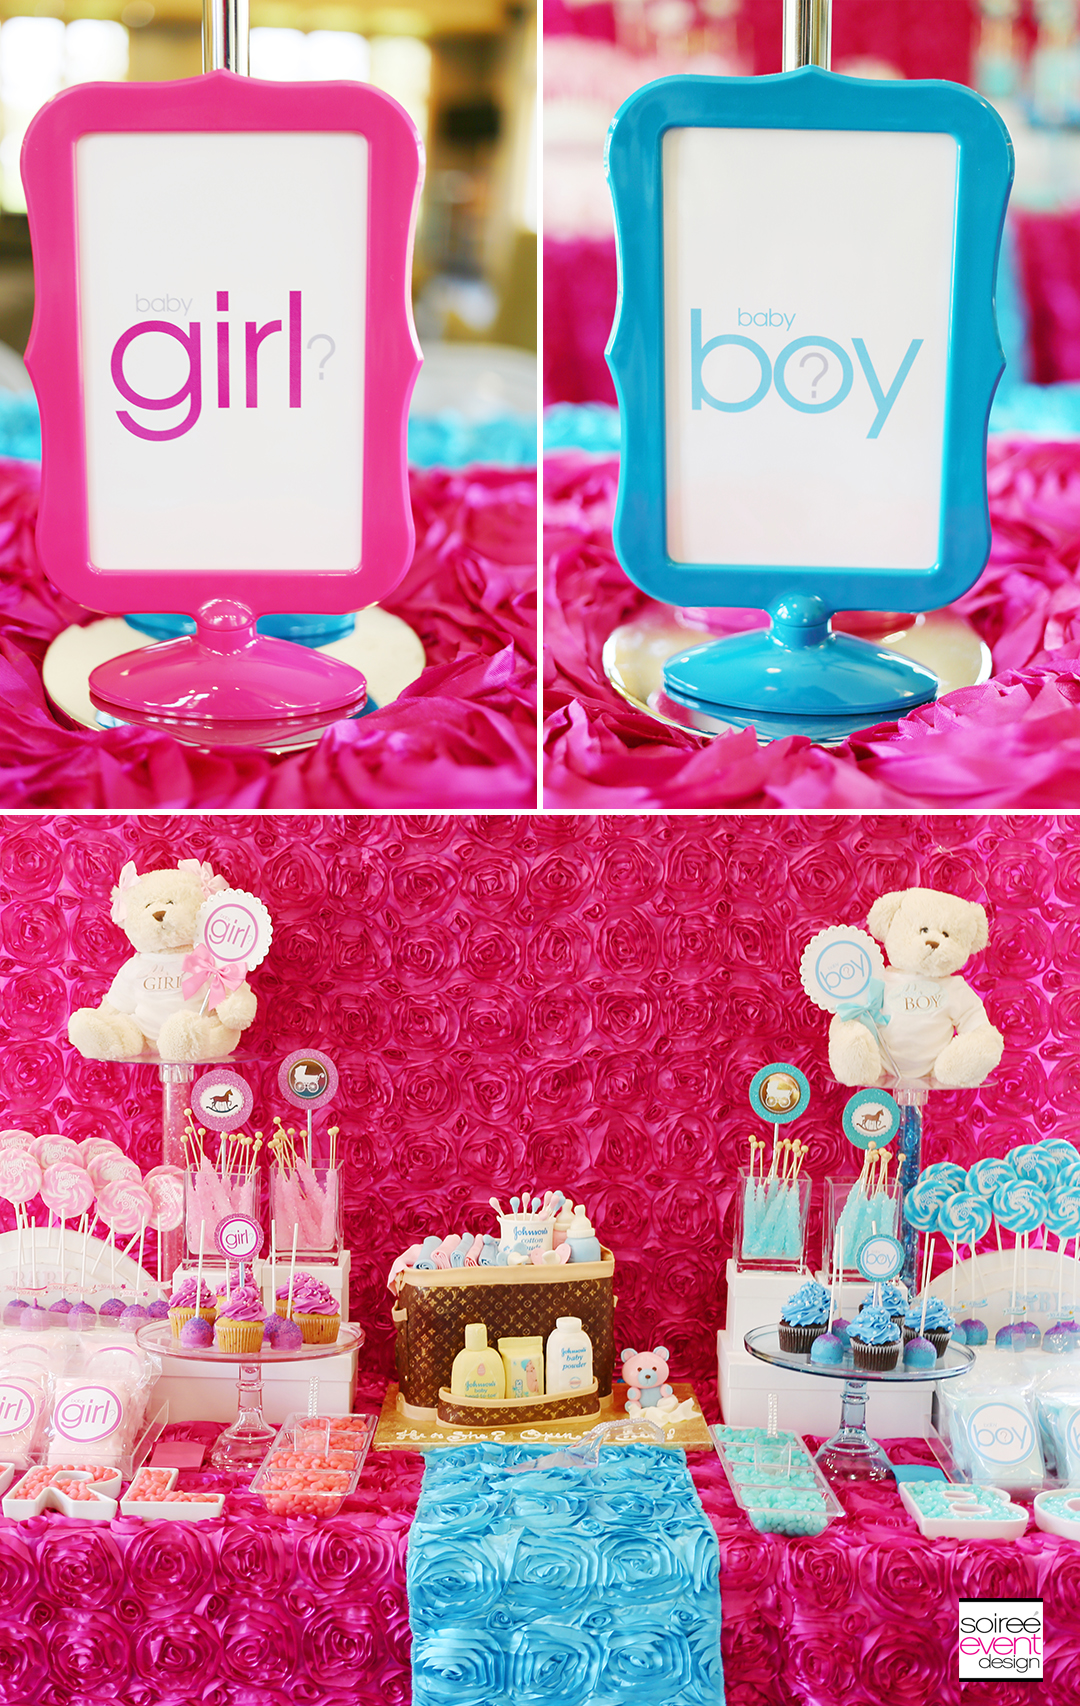 How to set up a Gender Reveal Party